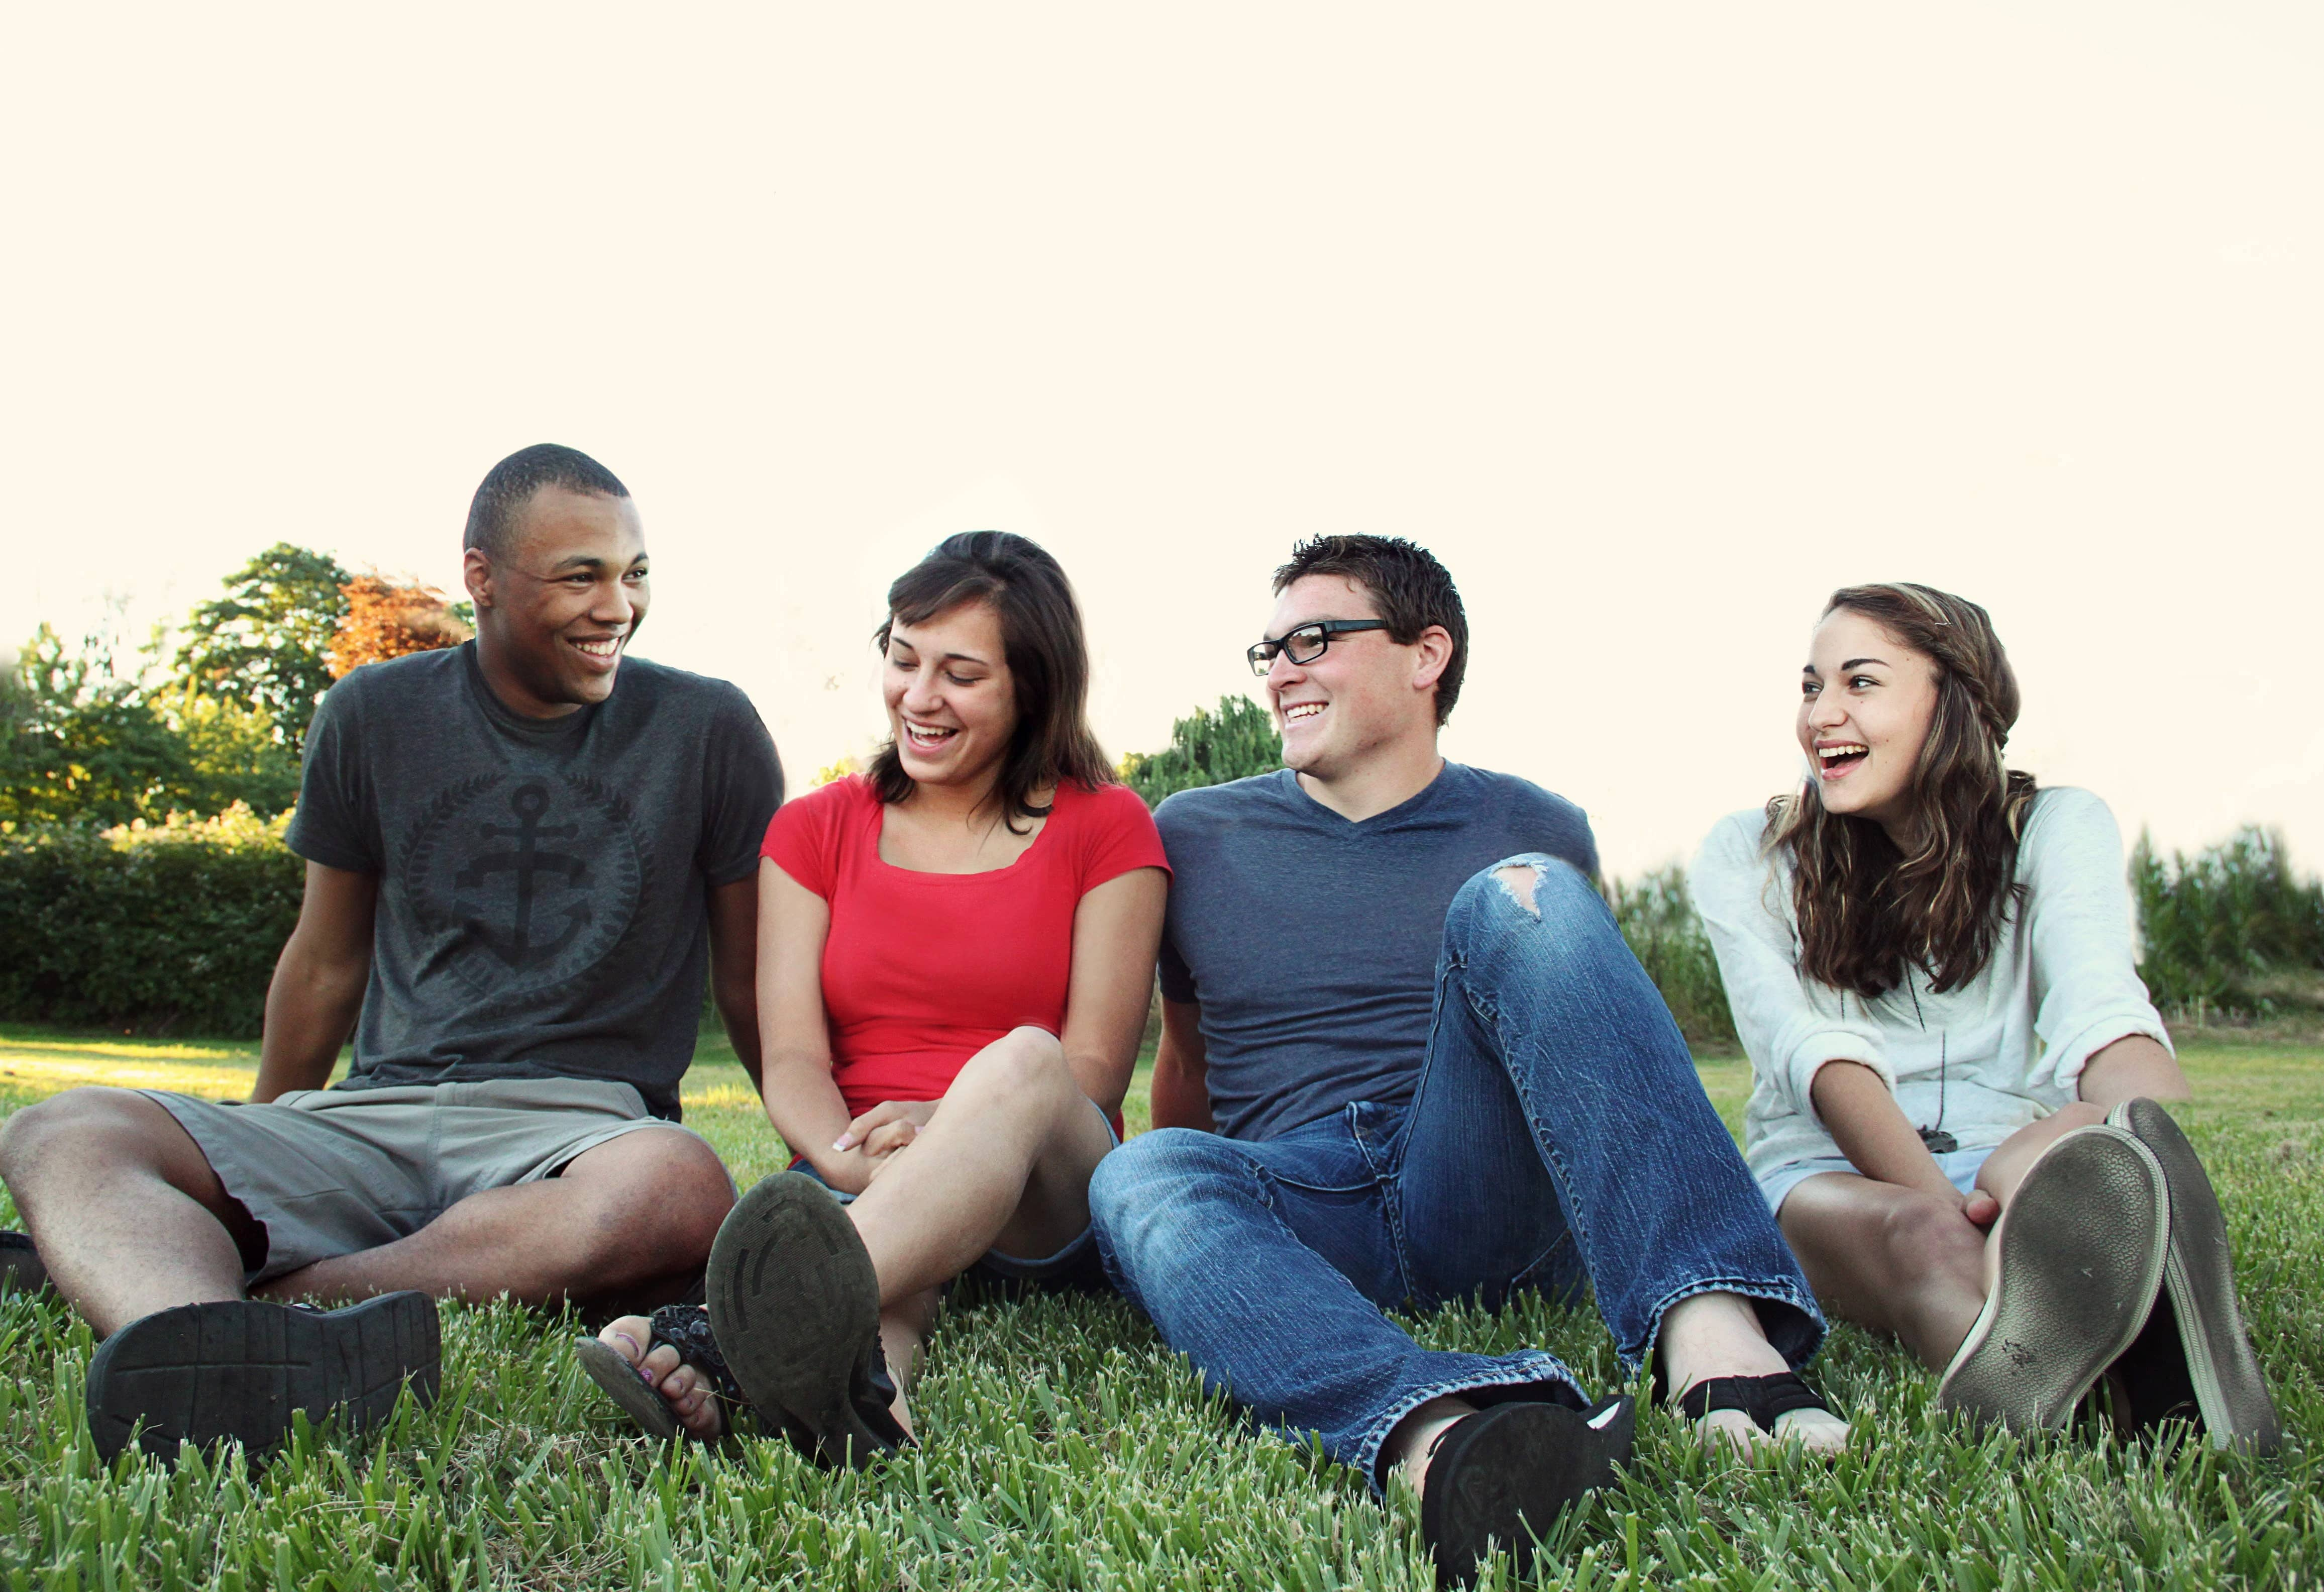 Four people sitting on the grass and laughing together